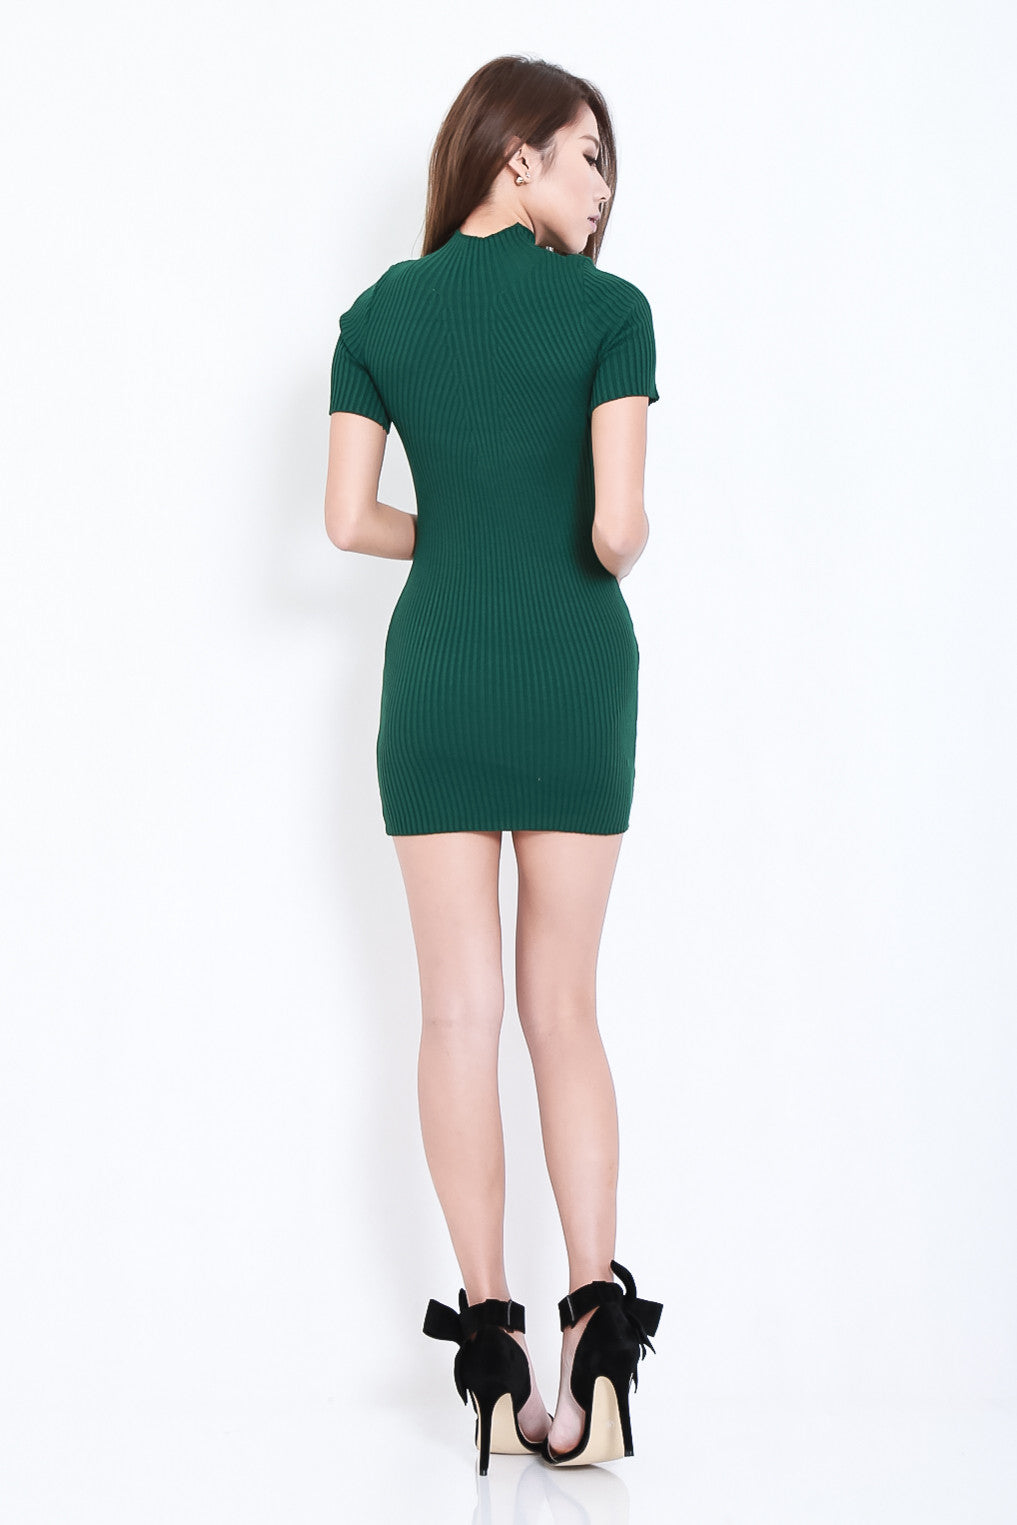 TAKE ME HIGHER RIBBED KNIT DRESS IN FOREST